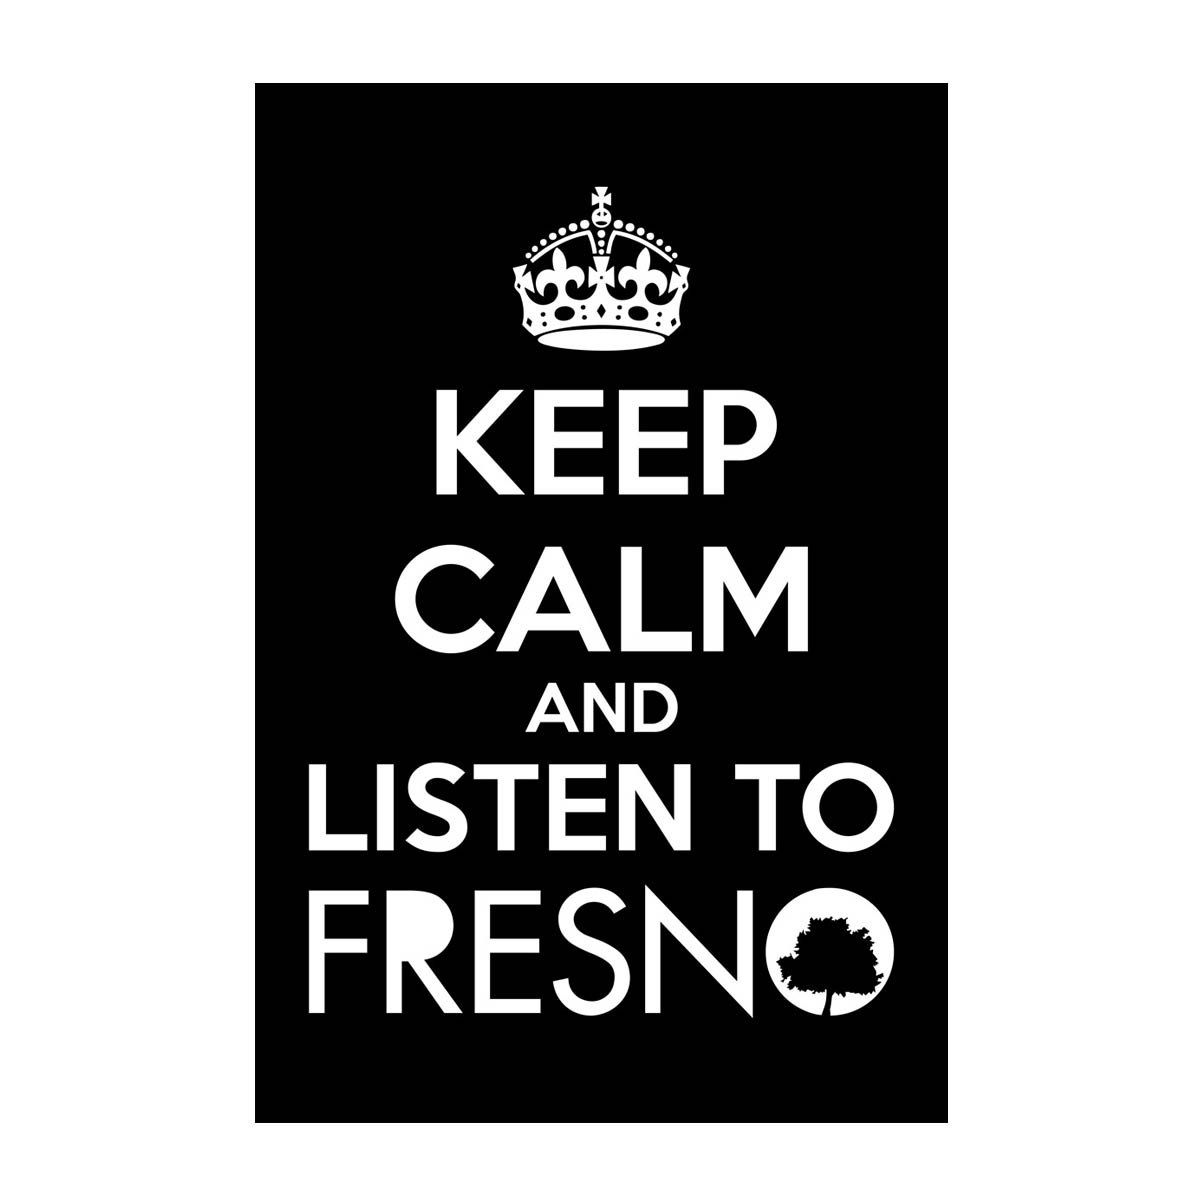 Pôster Fresno - Keep Calm Black